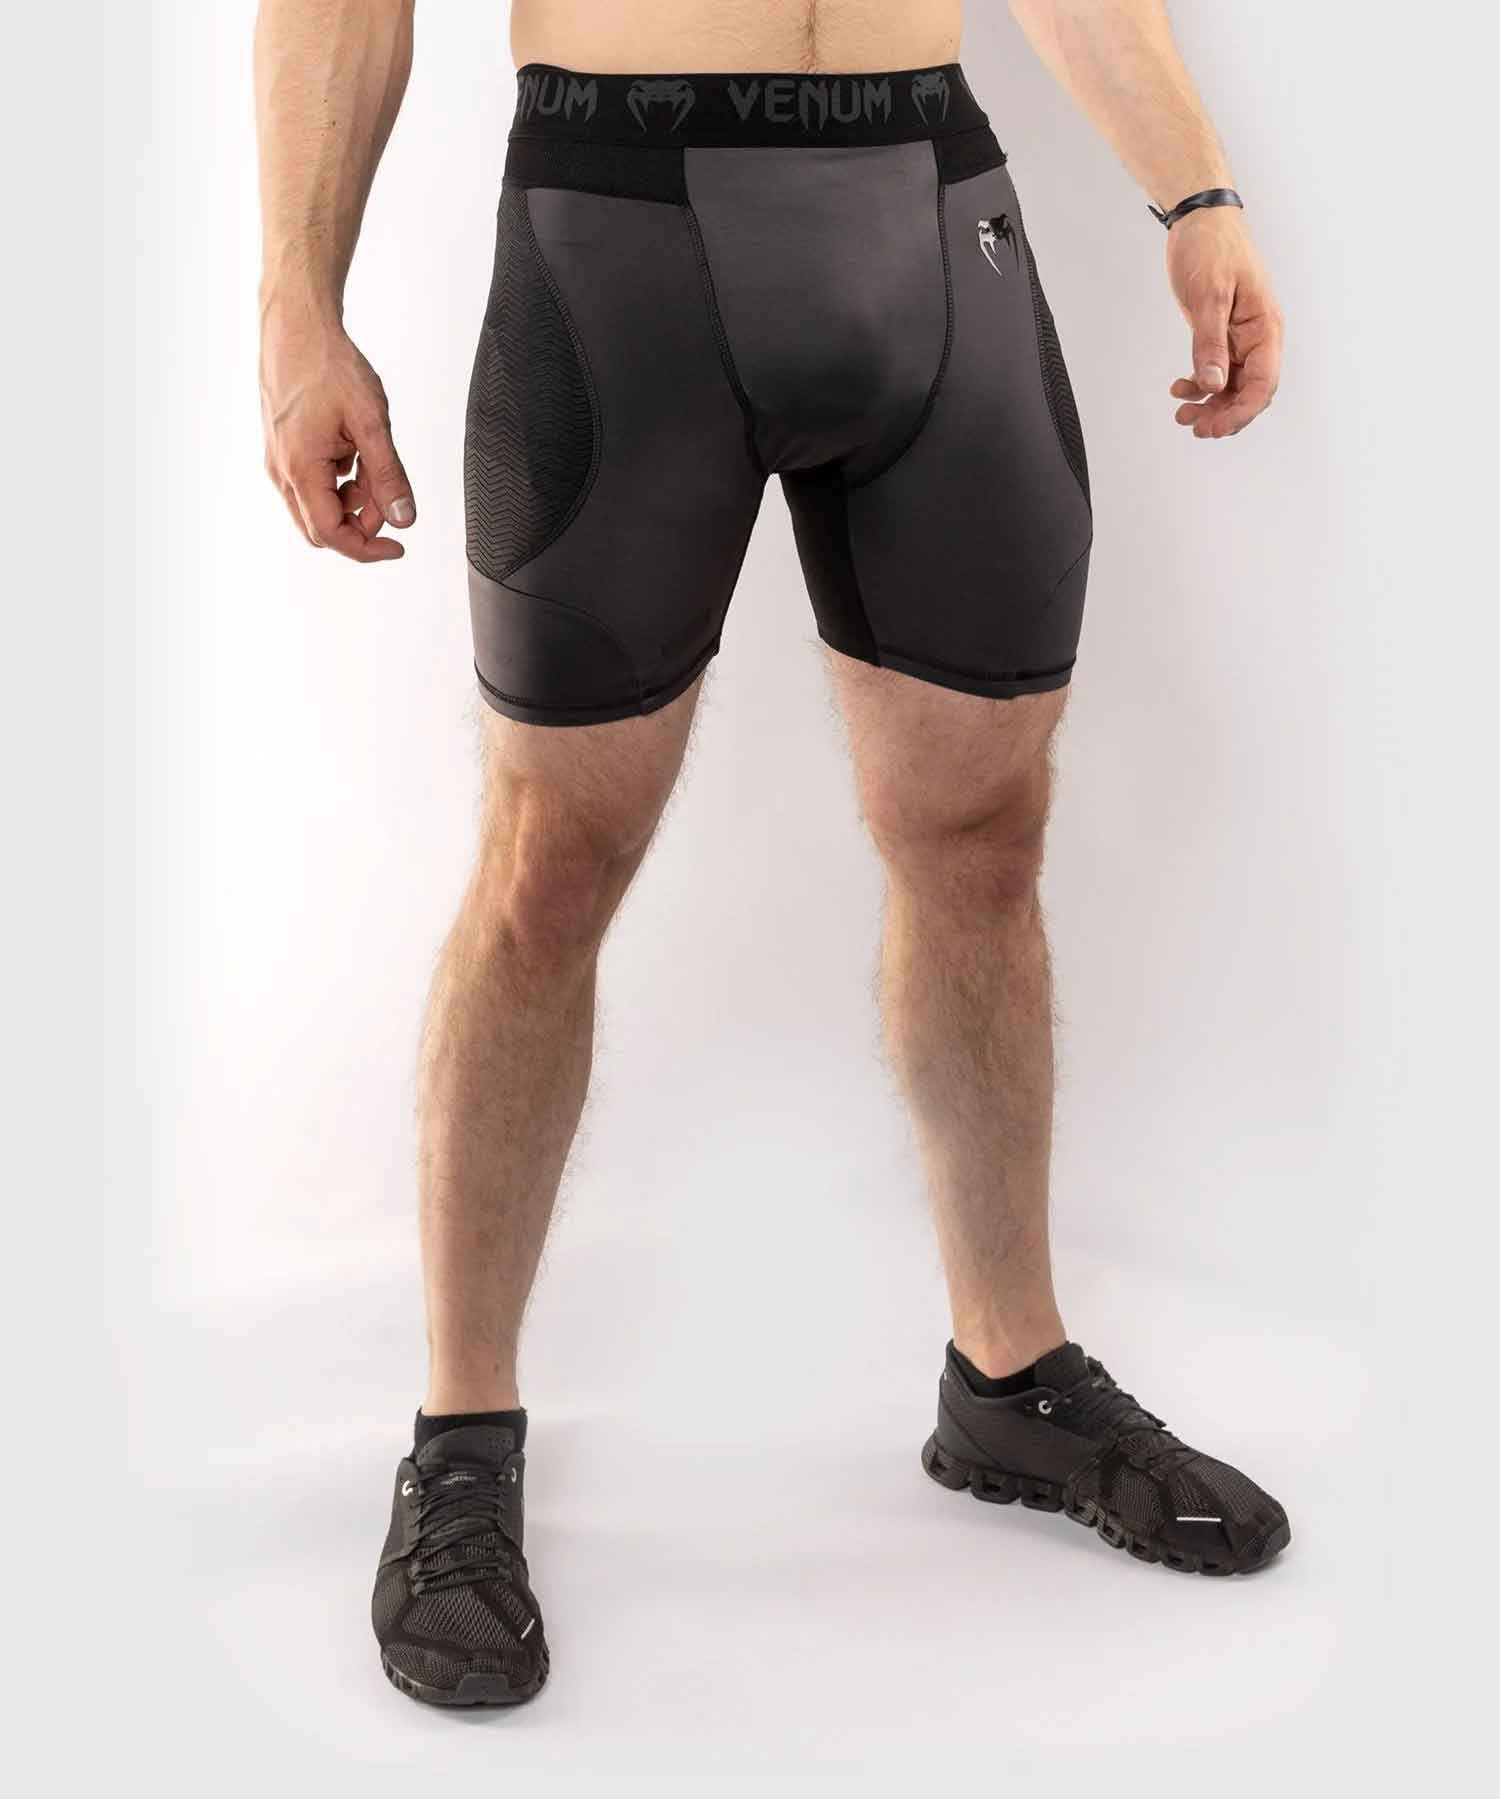 G-FIT COMPRESSION SHORTS/G-フィット コンプレッションショーツ(グレー/黒)